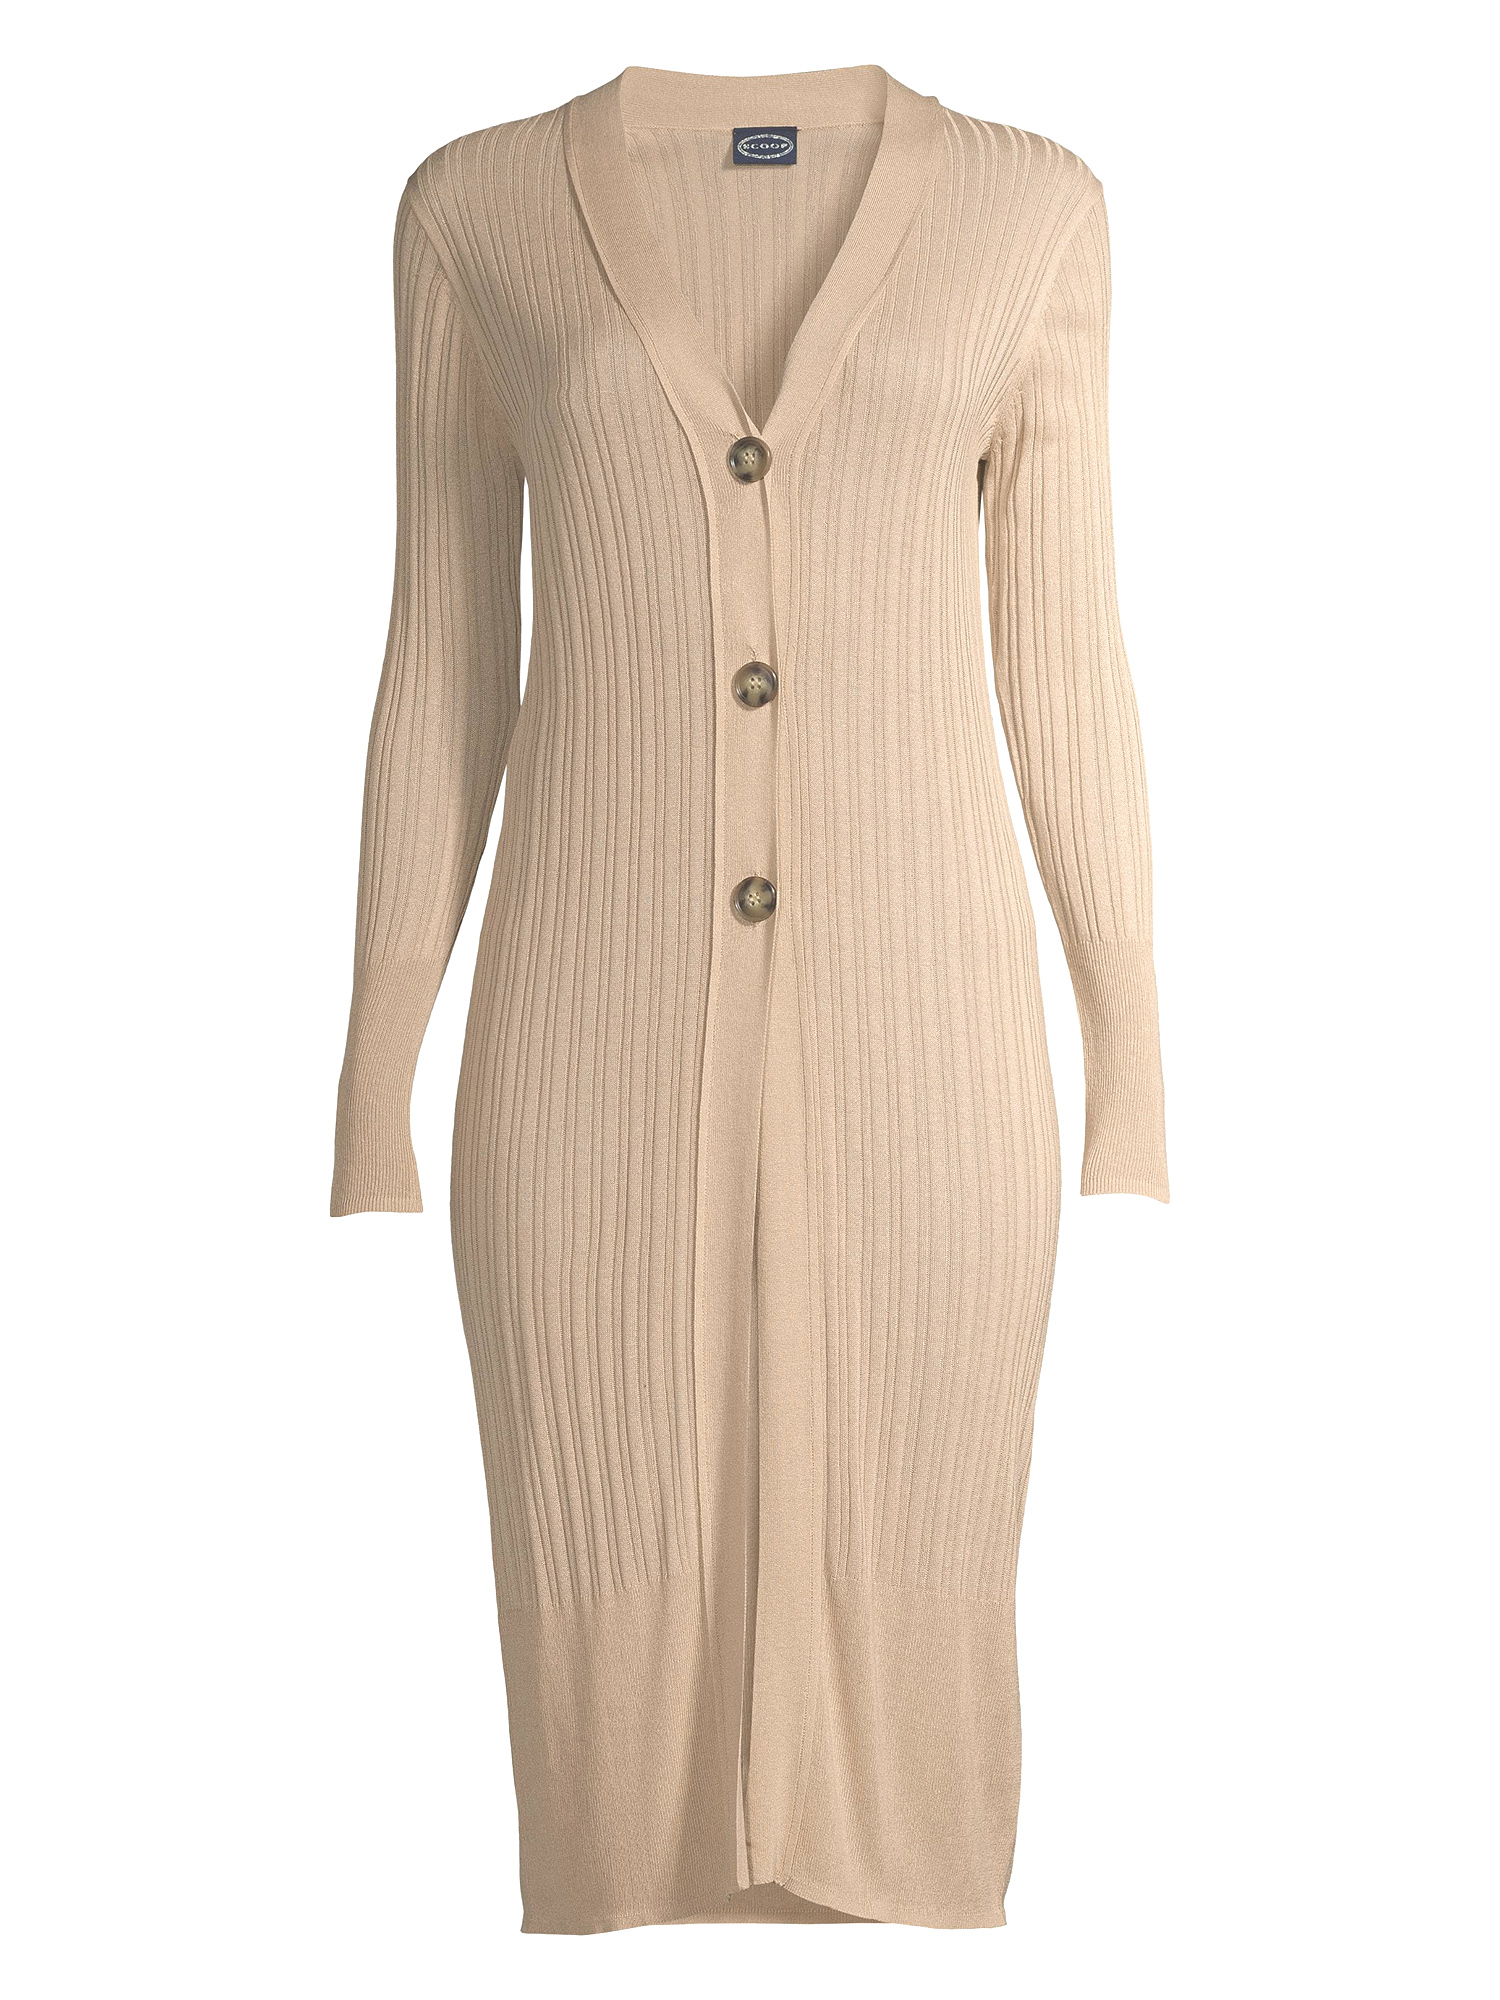 Scoop Women's Long Cardigan Button Front Knit Sweater